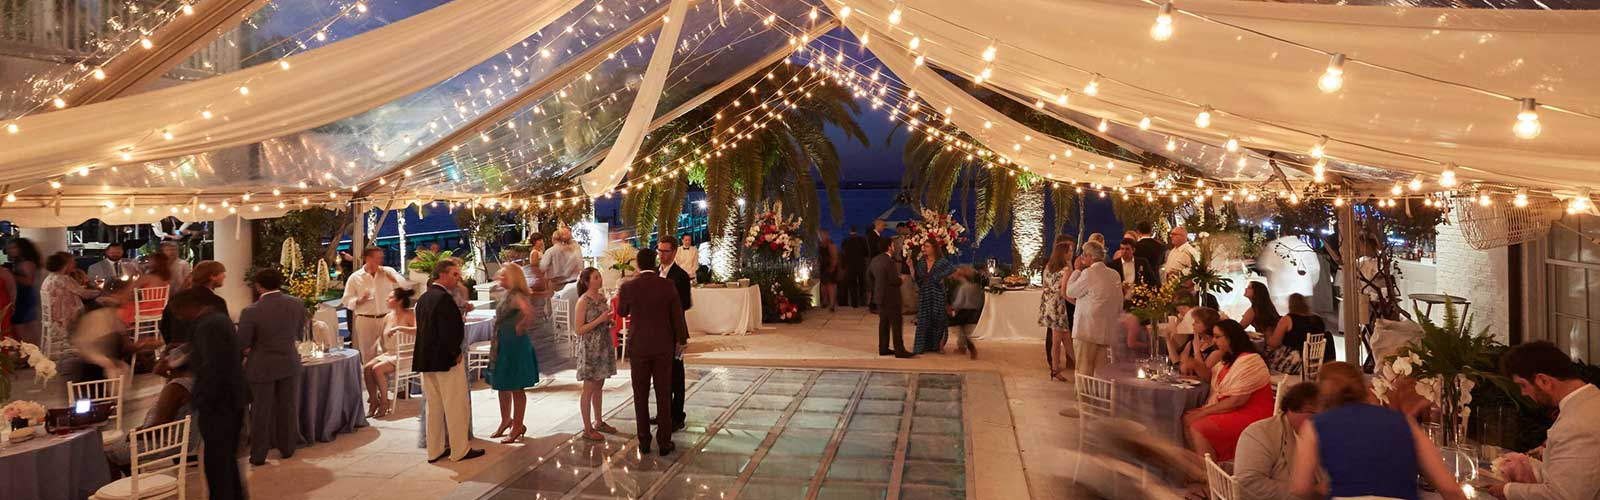 Super Event Rentals In Mobile Al And The Greater Gulf Coast Download Free Architecture Designs Intelgarnamadebymaigaardcom